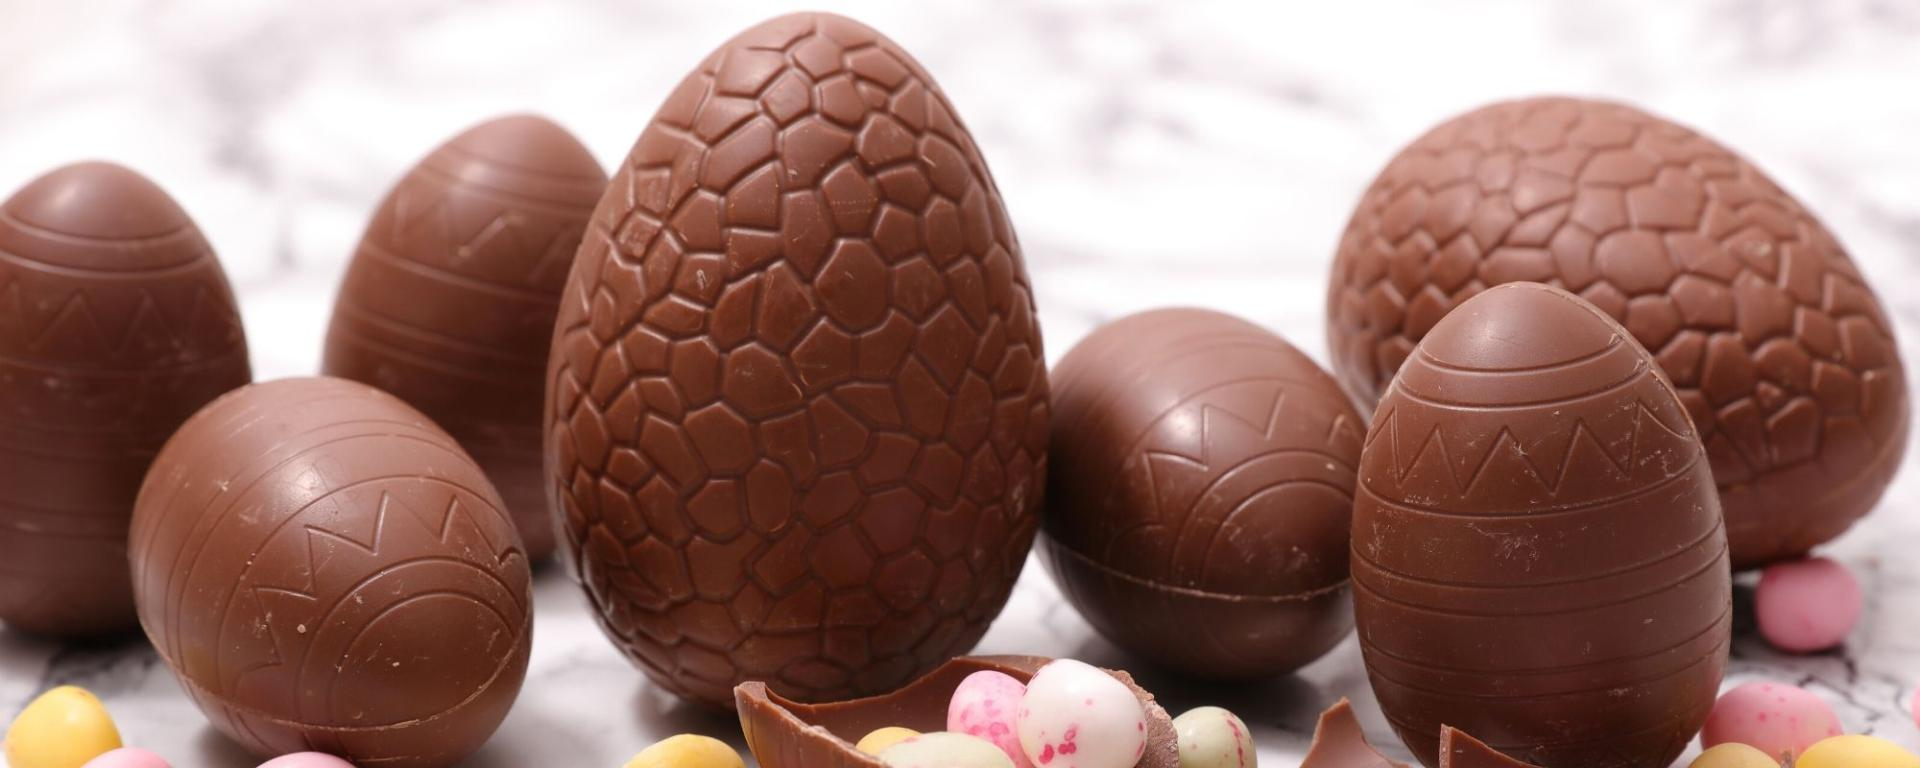 Chocolate Easter Egg Feature Image